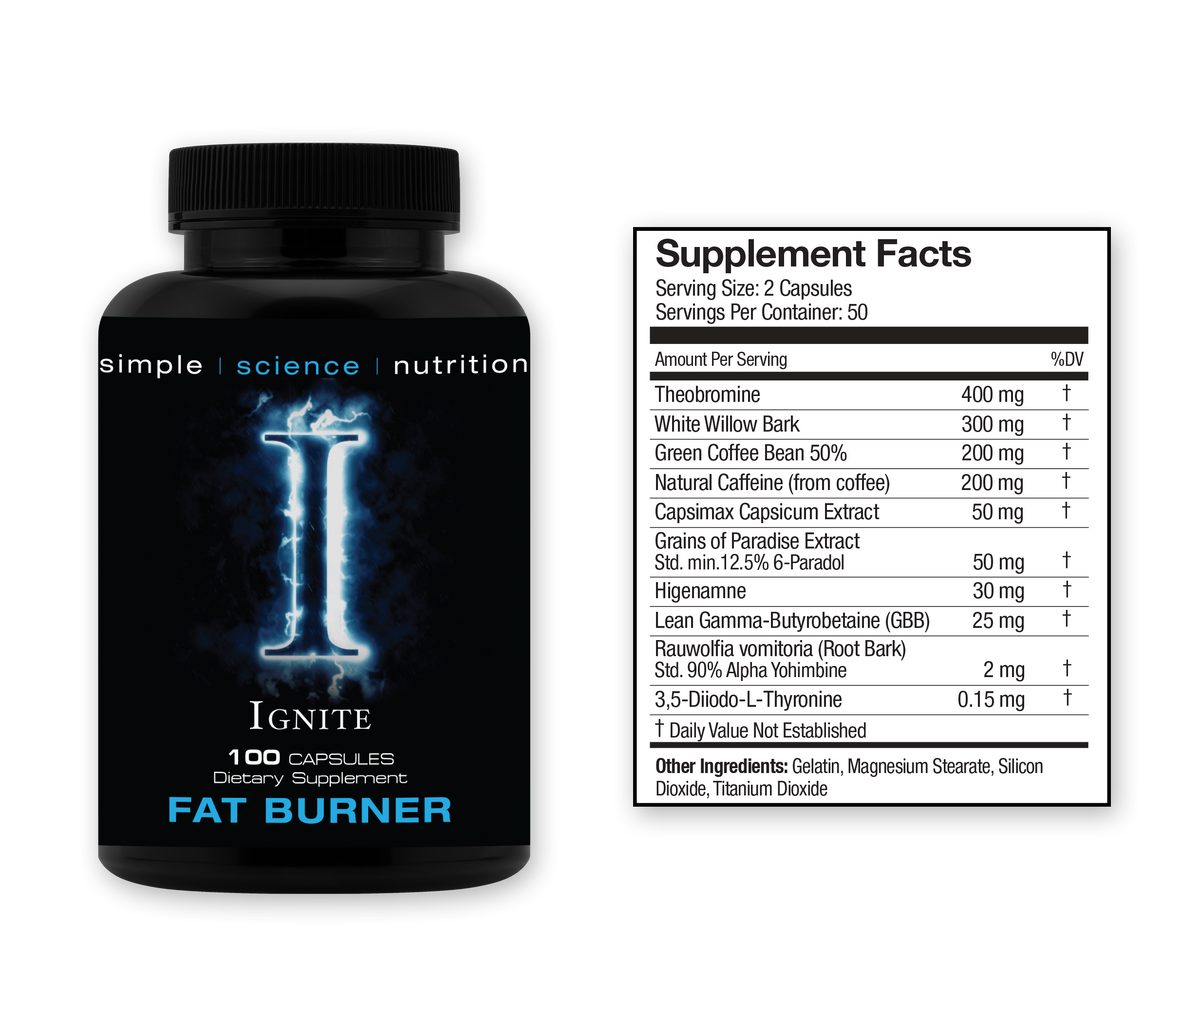 IGNITE - FAT BURNER